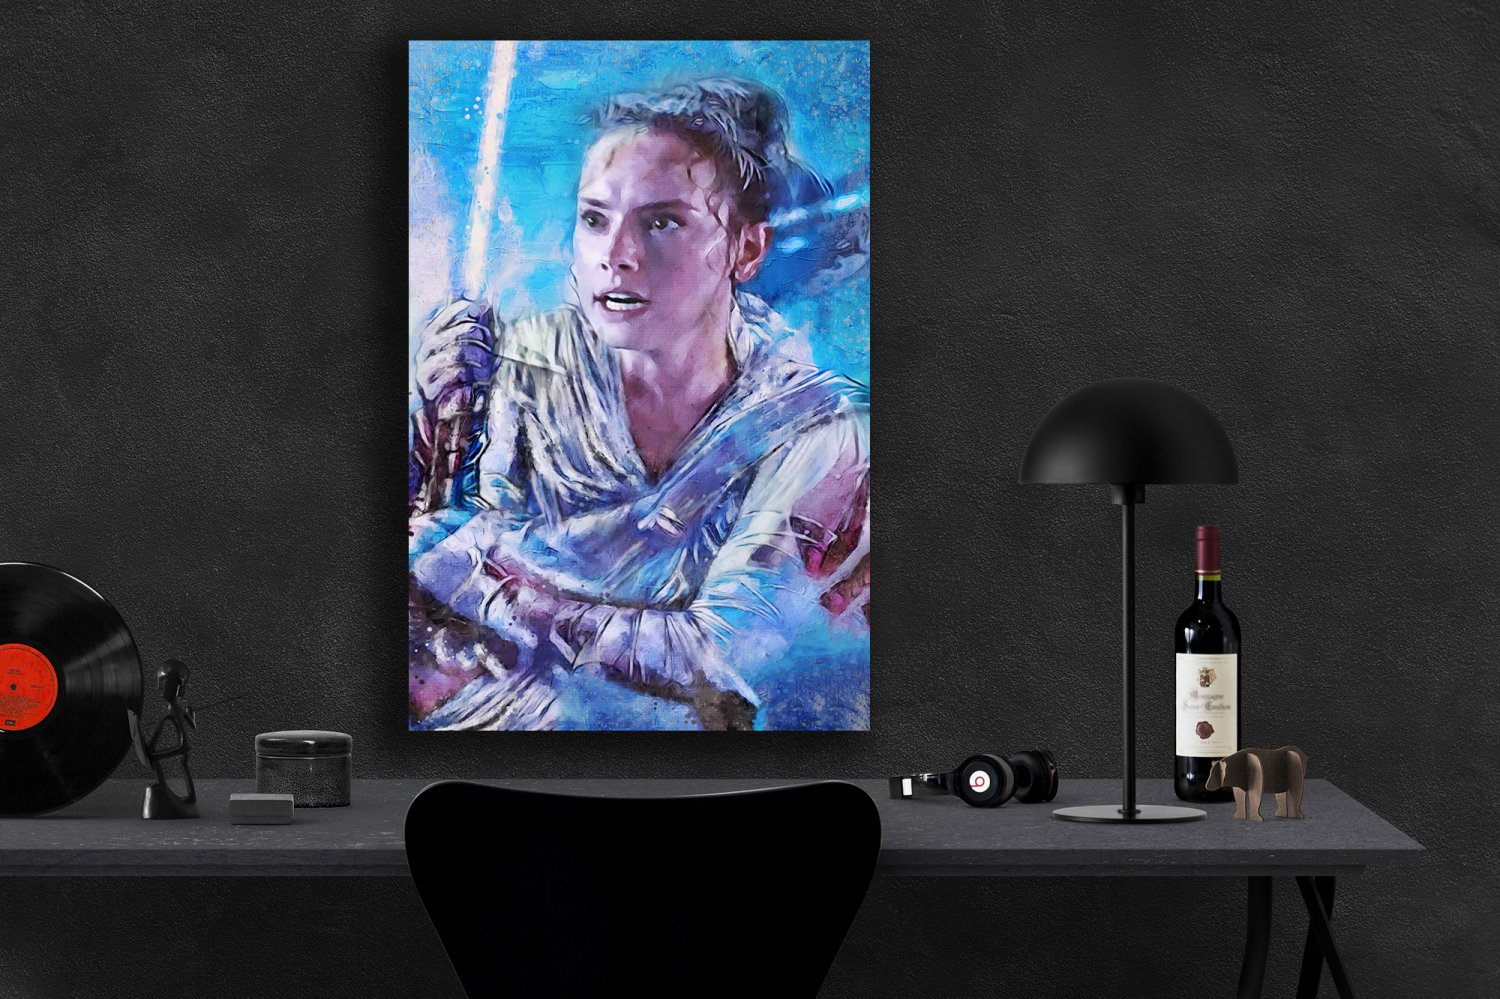 Star Wars The Rise of Skywalker, Rey, Daisy Ridley   8x12 inches Canvas Print